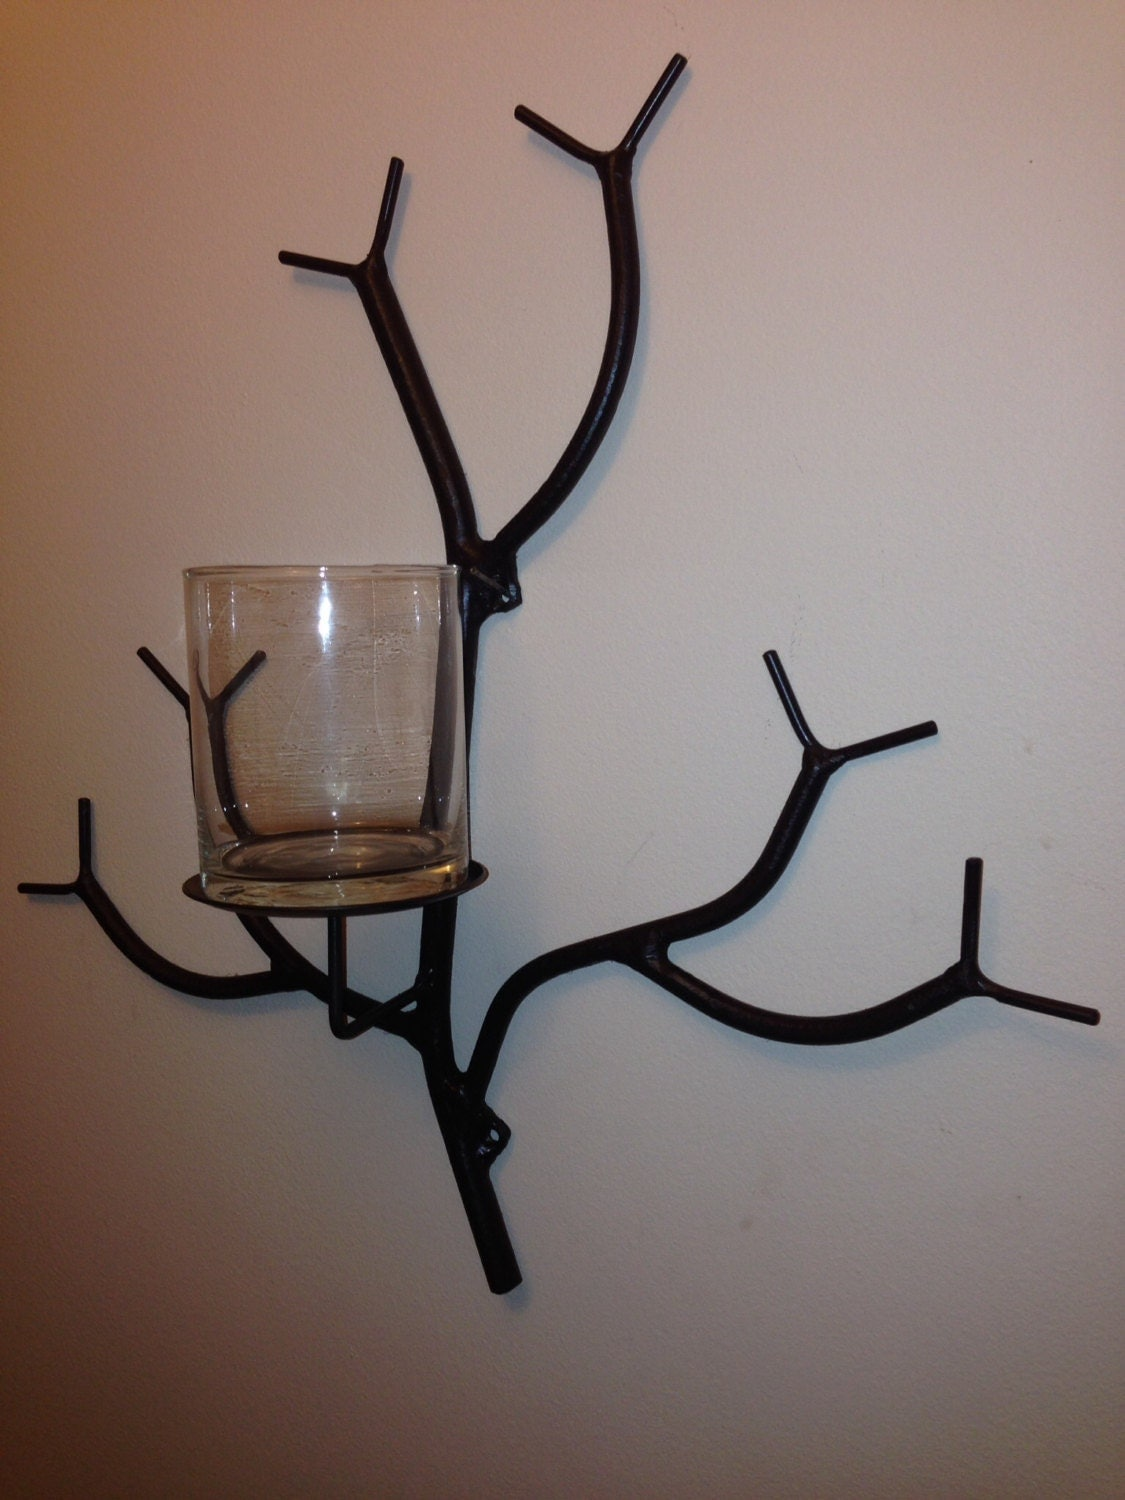 Candle Shaped Wall Lights : Sconce Branch candle holder unique wall mounted tree limb